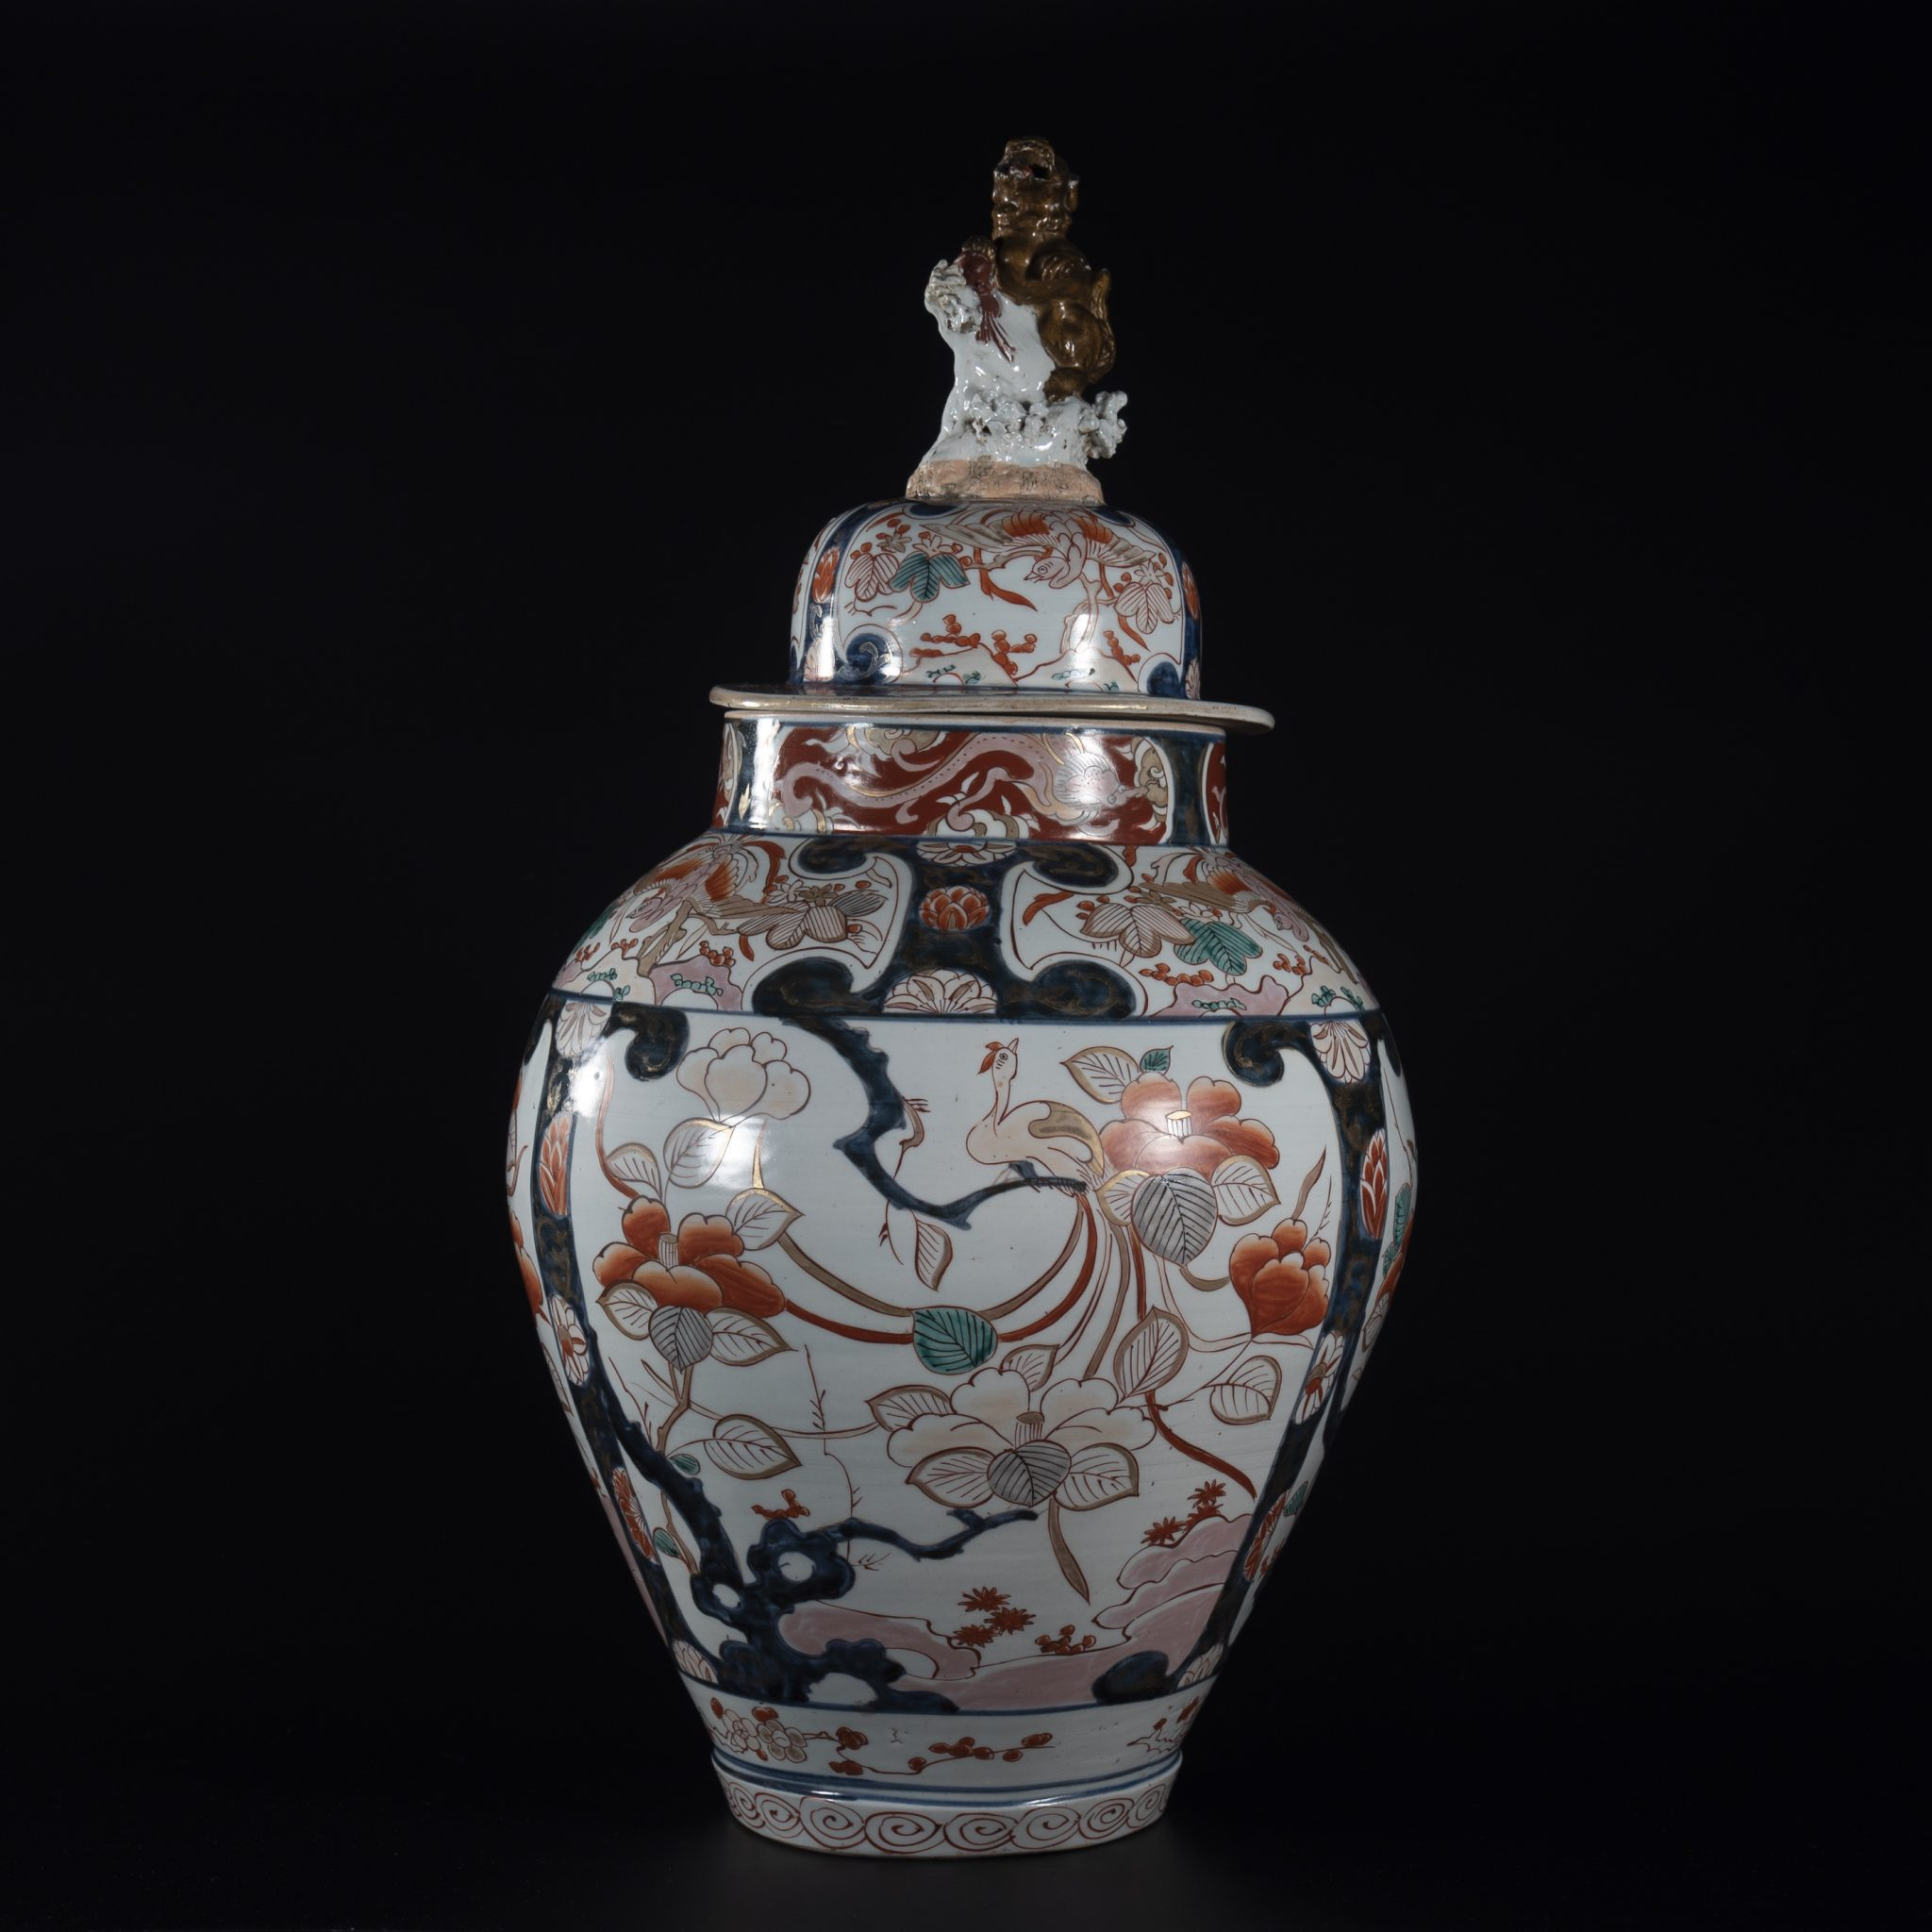 A Palatial Pair of Japanese Porcelain Vases and Cover, circa 1700